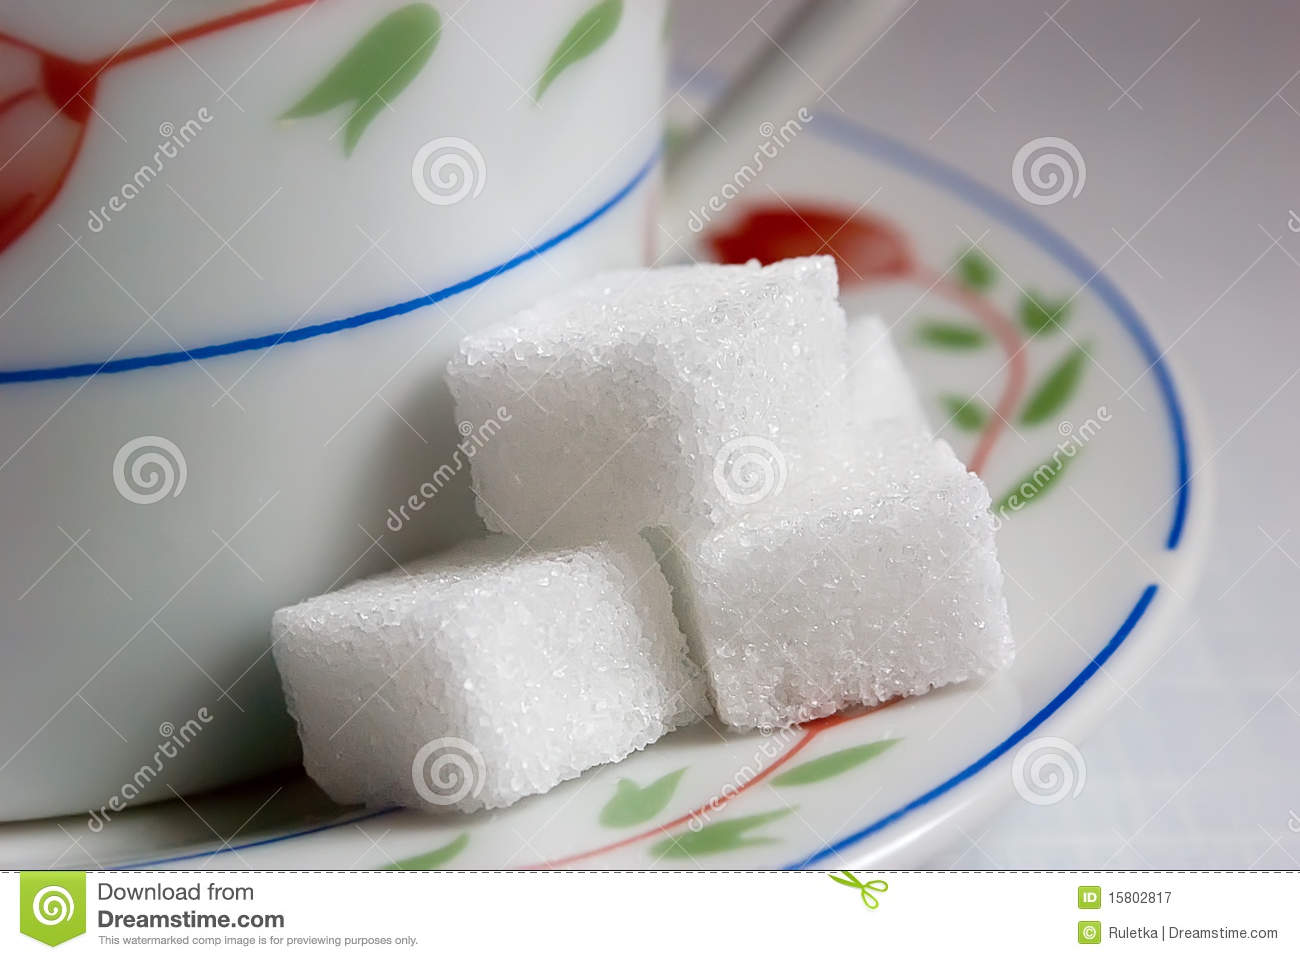 Sugar Lump Sugar  Royalty Free Stock Photography   Image  15802817